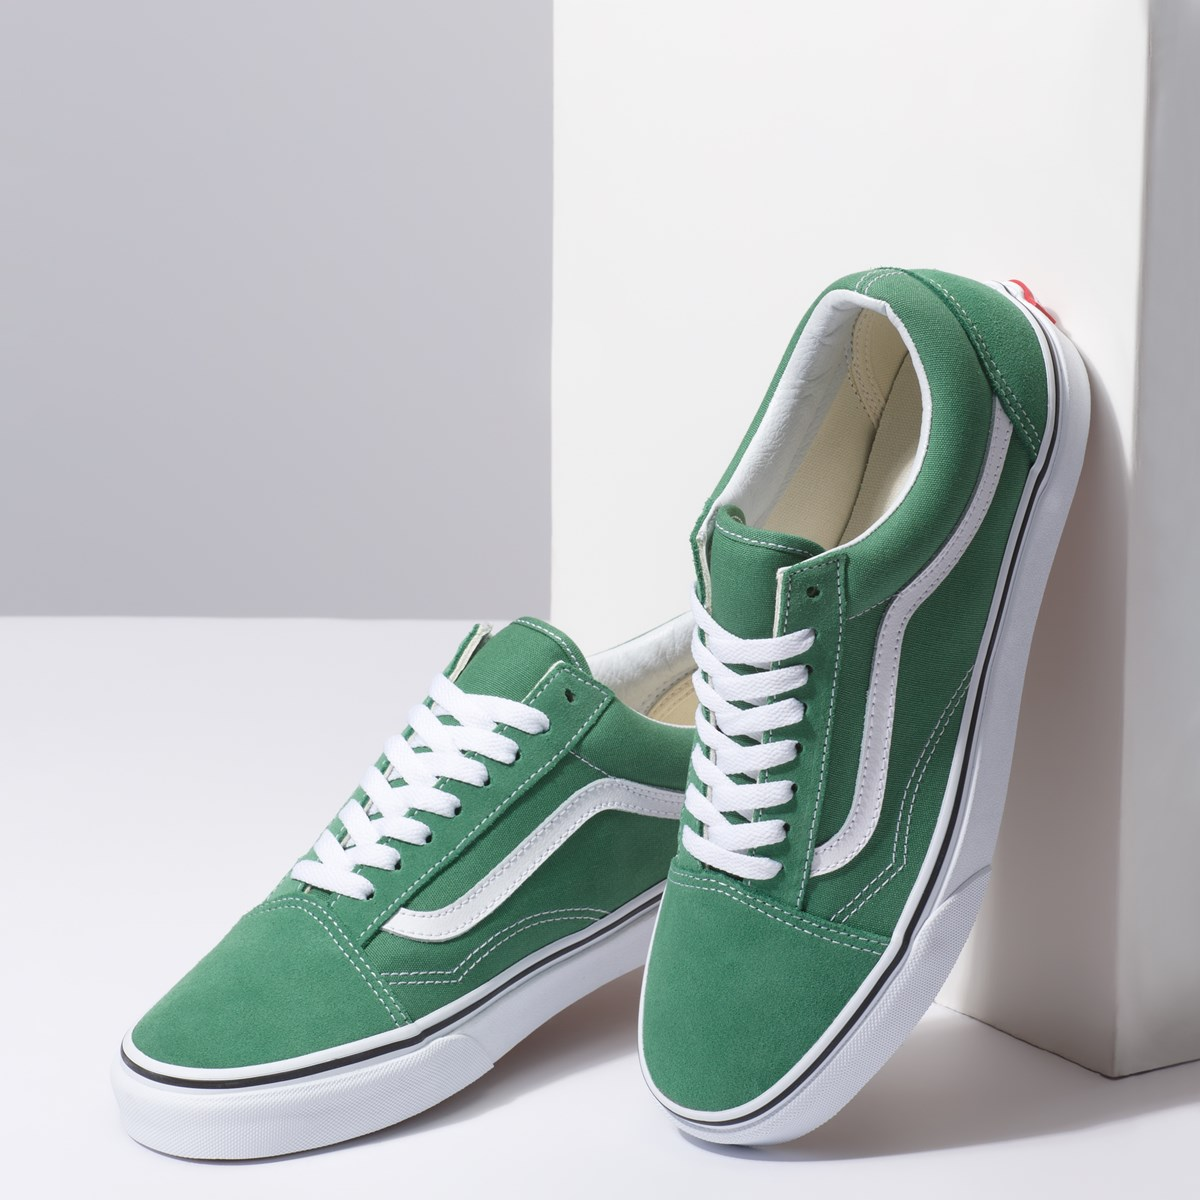 cc78eb0c0e84 promotional Men s Old Skool Sneaker in Green. Previous. default view  ALT1   ALT2